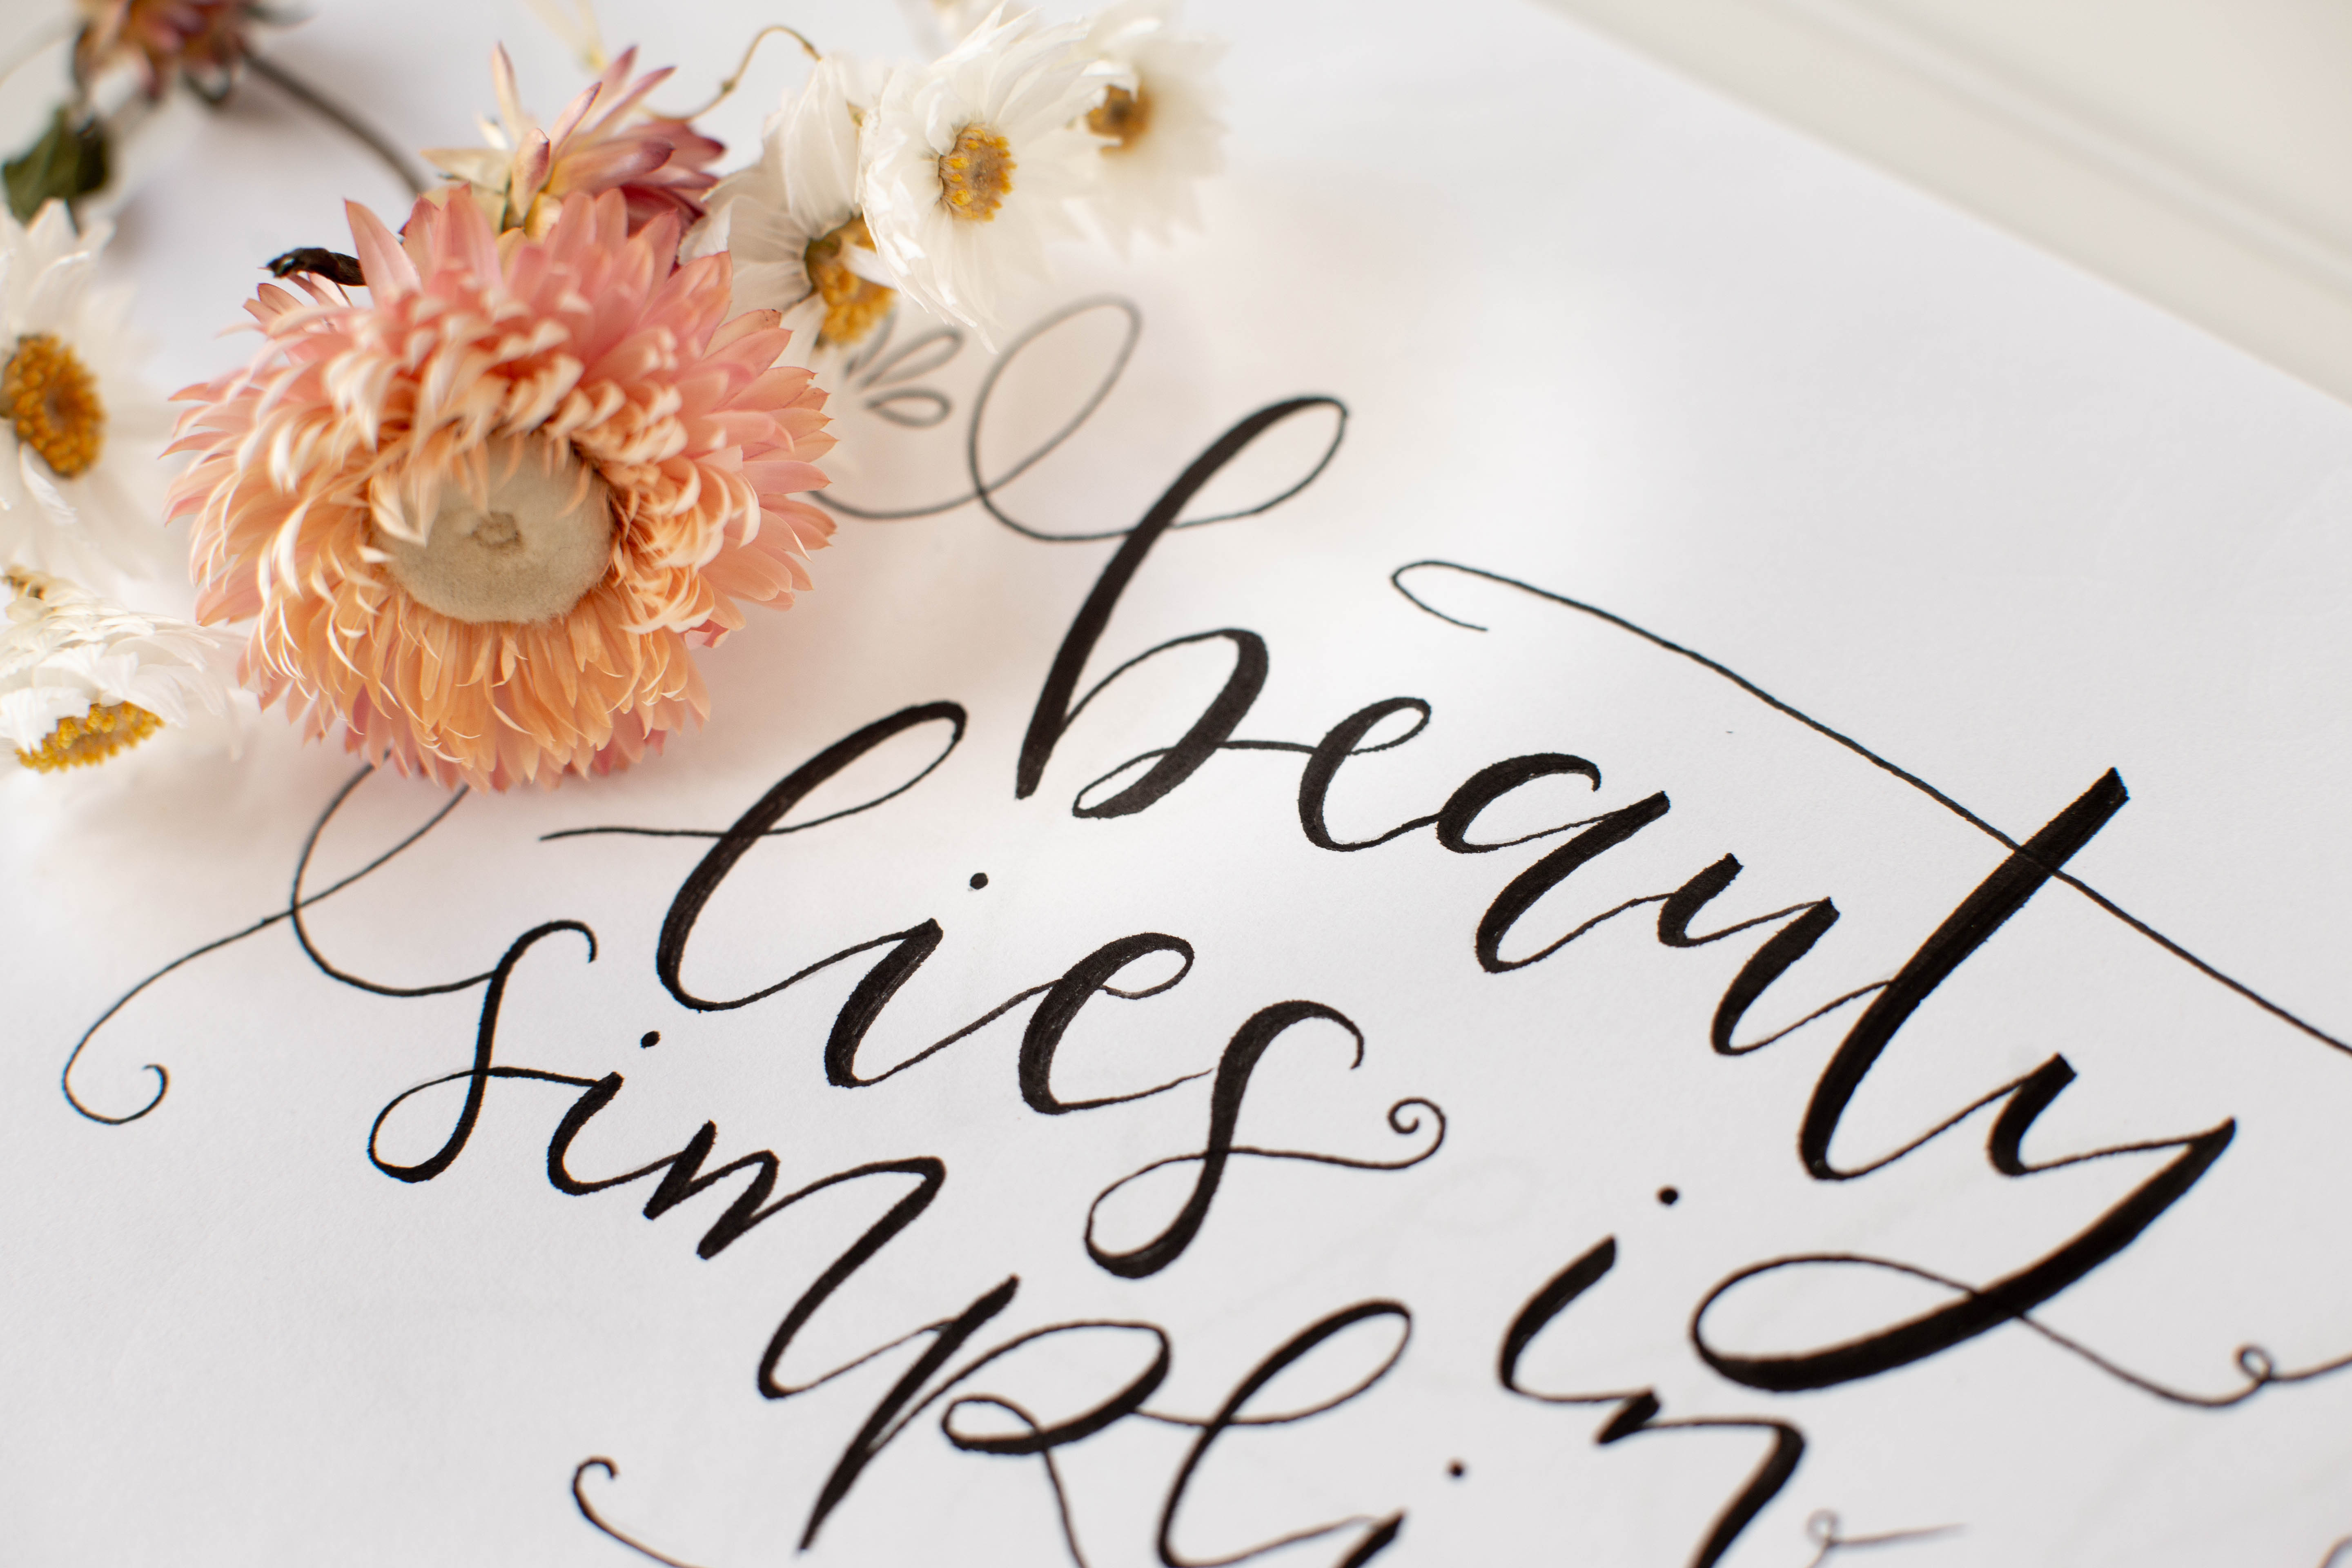 JO_and_JUDY_MagazinLettering_02